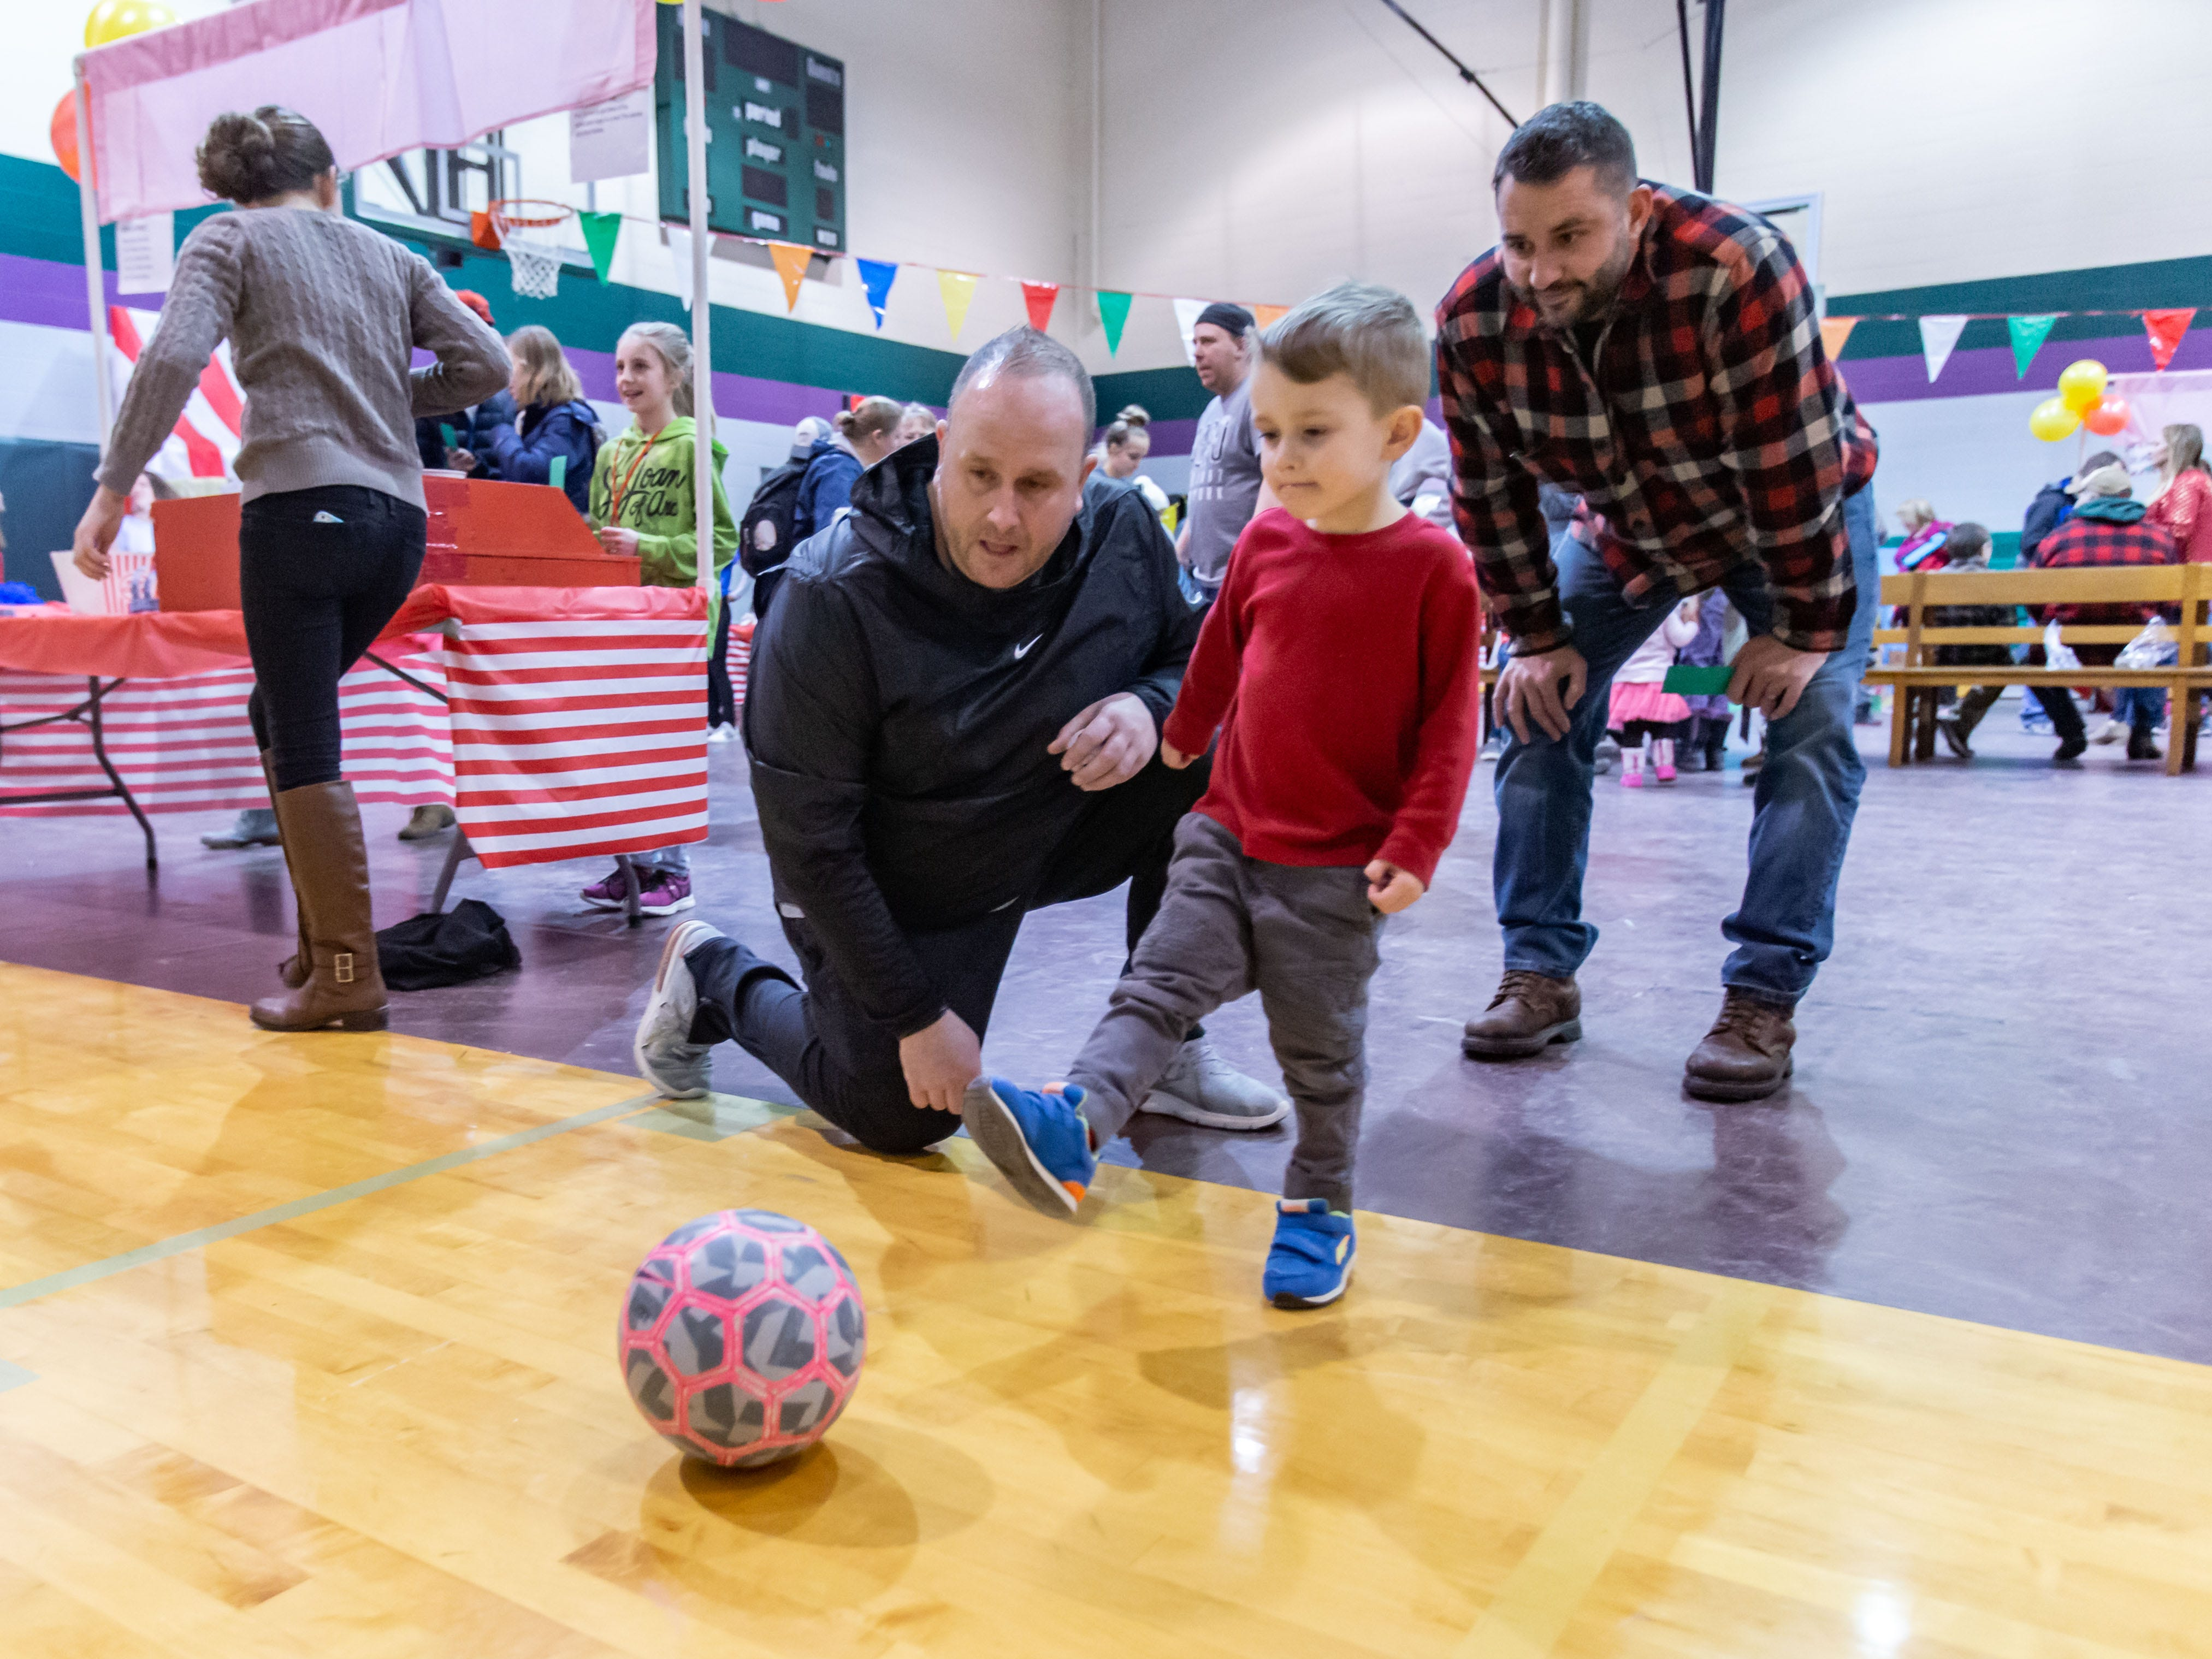 Scott Asher (left), Executive Director of Strike FC Wisconsin soccer club, gives pointers to three-year-old Beau Radke of Delafield as he tries a soccer game during the 9th annual St. Joan of Arc Carnival in Nashotah on Friday, Feb. 1, 2019. The family-friendly event features carnival games, food, face painting, balloon animals, a fortune teller and more.